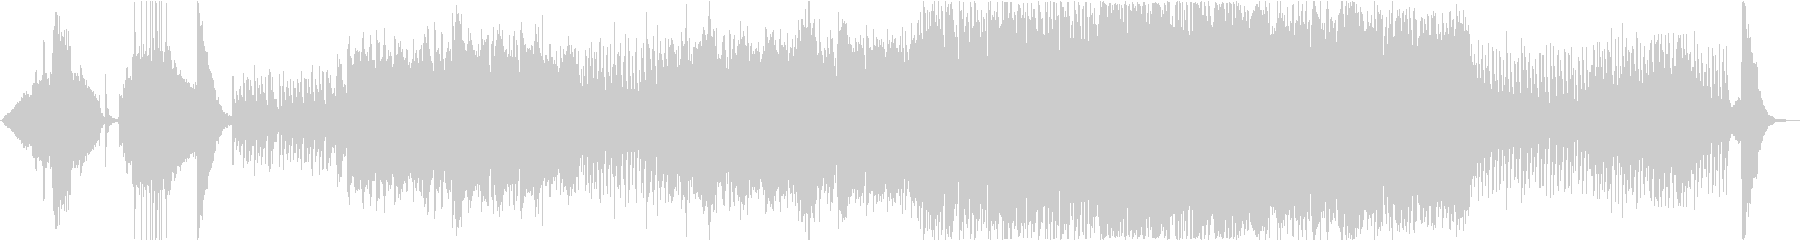 Festival and old-fashioned Japanese BGM's unreproduced waveform